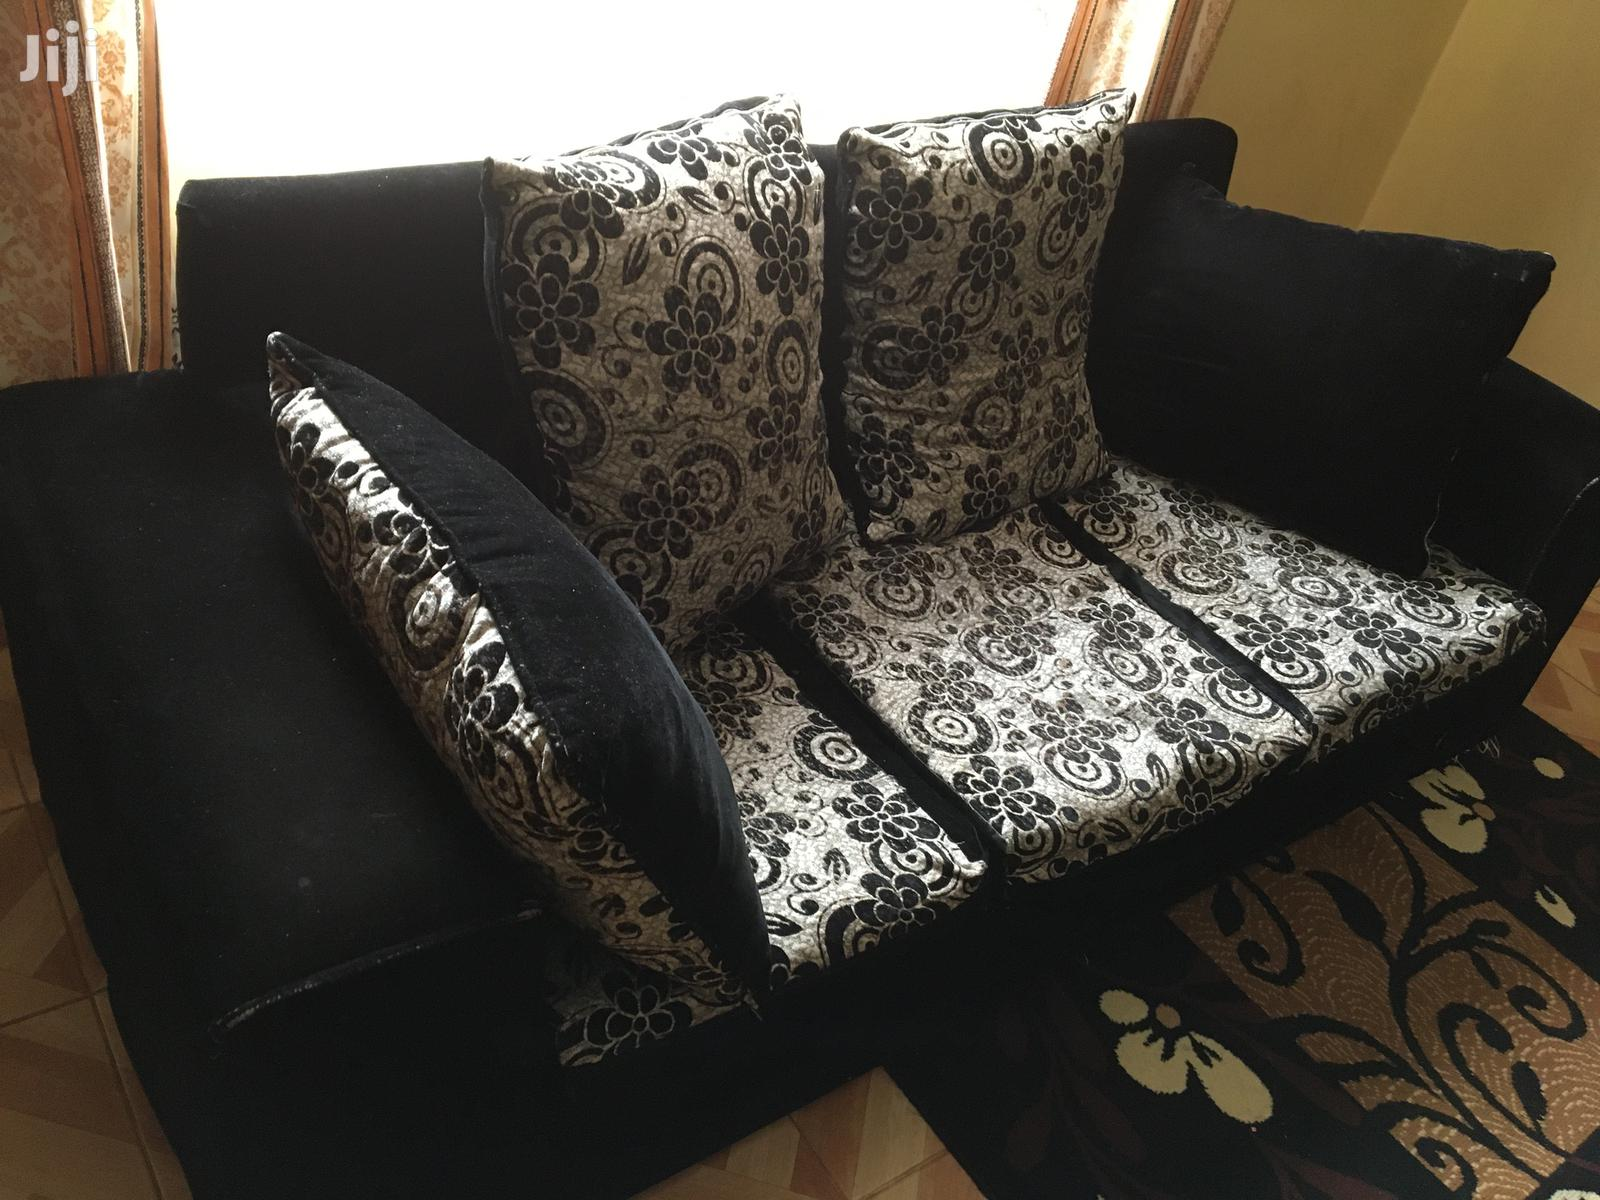 Archive: 5 Seater Velvet Sofa Set With a Foot Rest